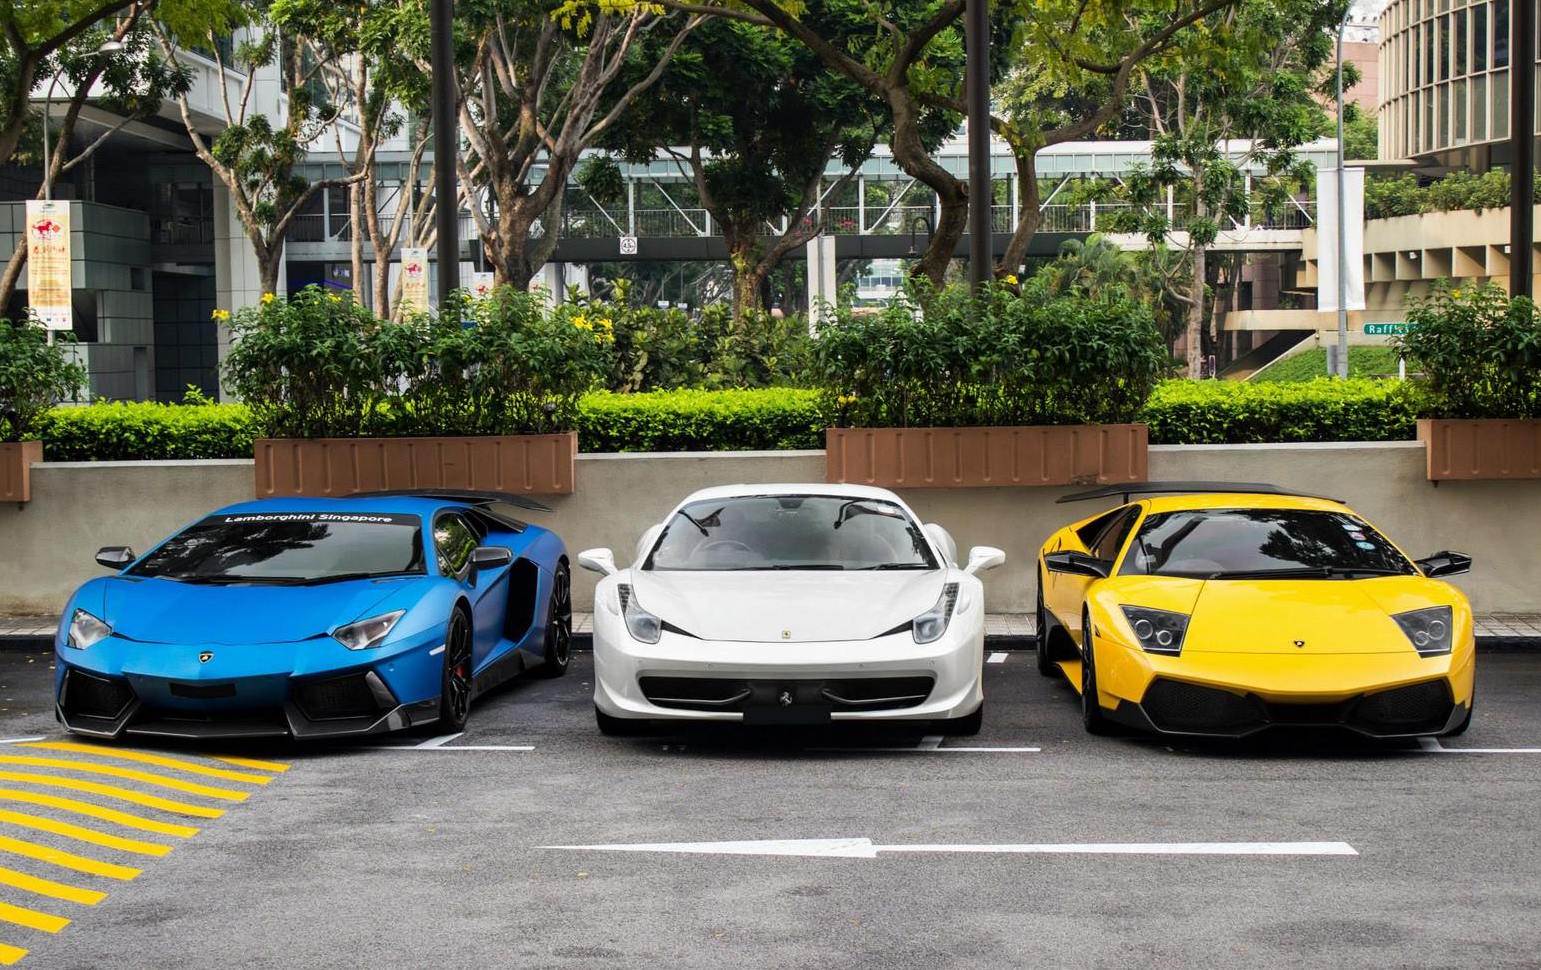 Does an Exotic Car Really Differ from a Mainstream Vehicle?